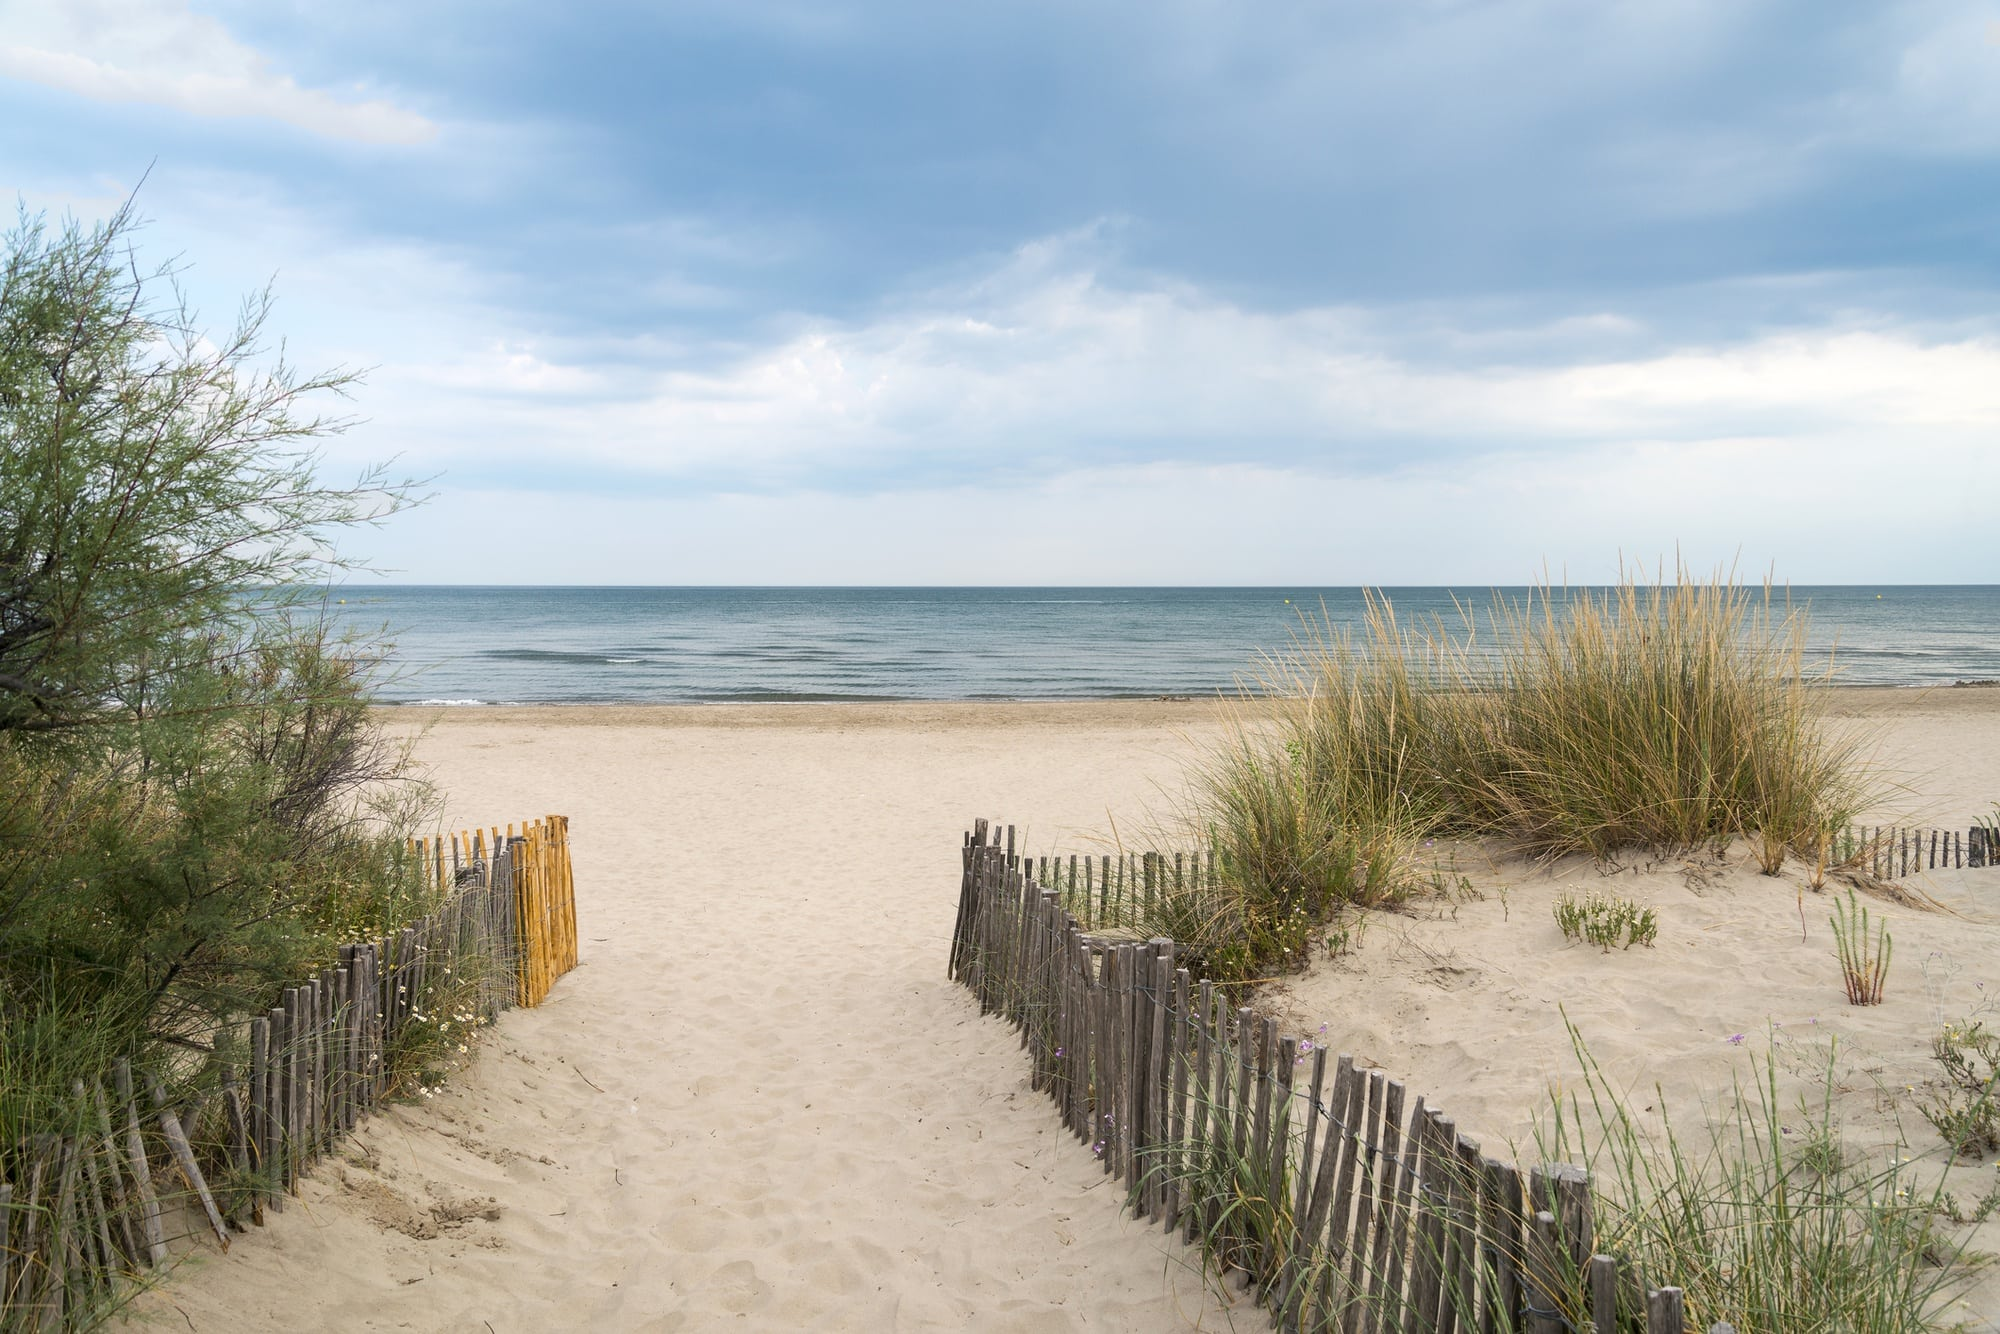 One of the sandy beaches near Montpellier